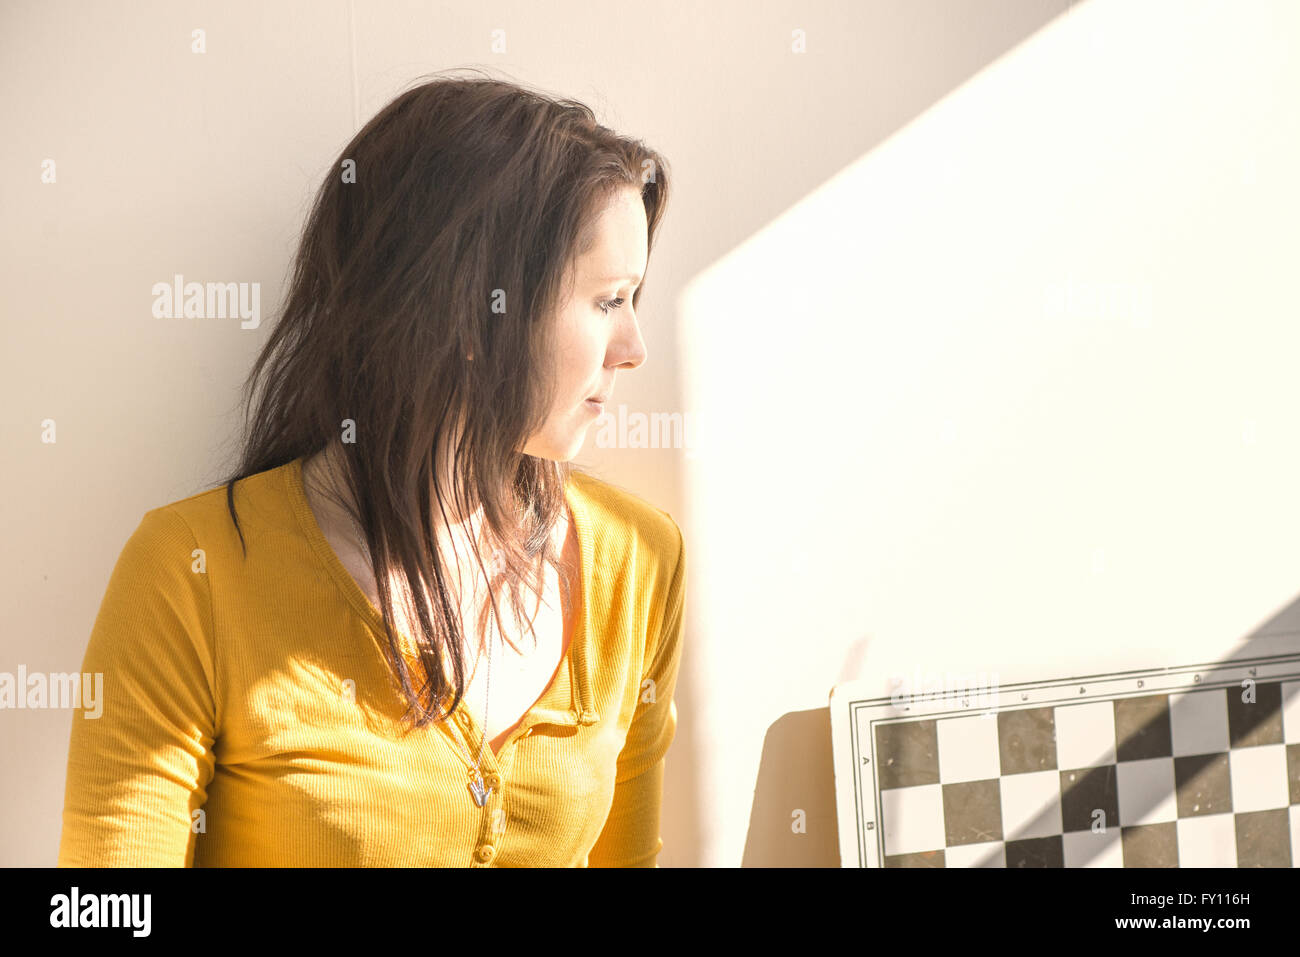 Serious woman and chessboard in home interior. Concept of strategy, leisure activity and contemplation. - Stock Image